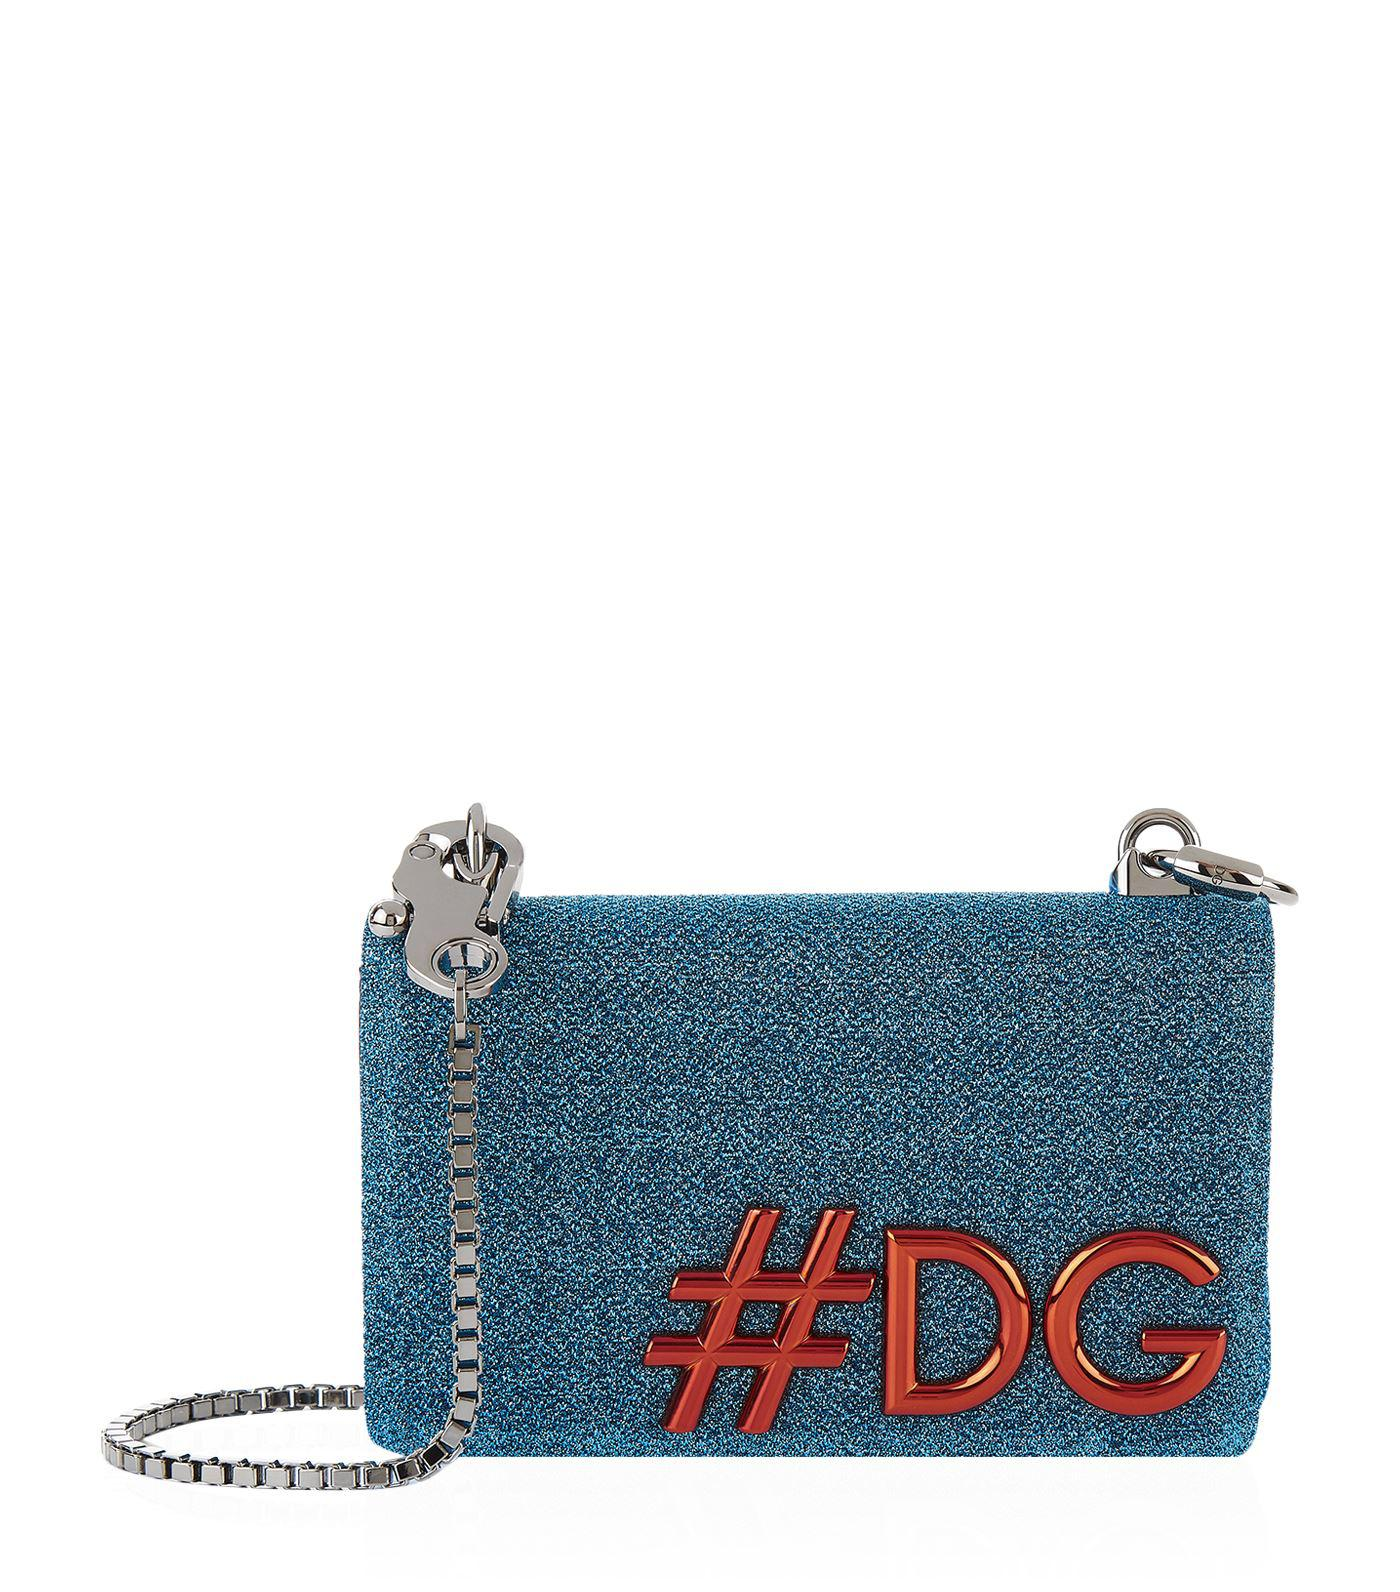 438ecb80ad Gallery. Previously sold at  Harrods · Women s Cross Body Bags ...